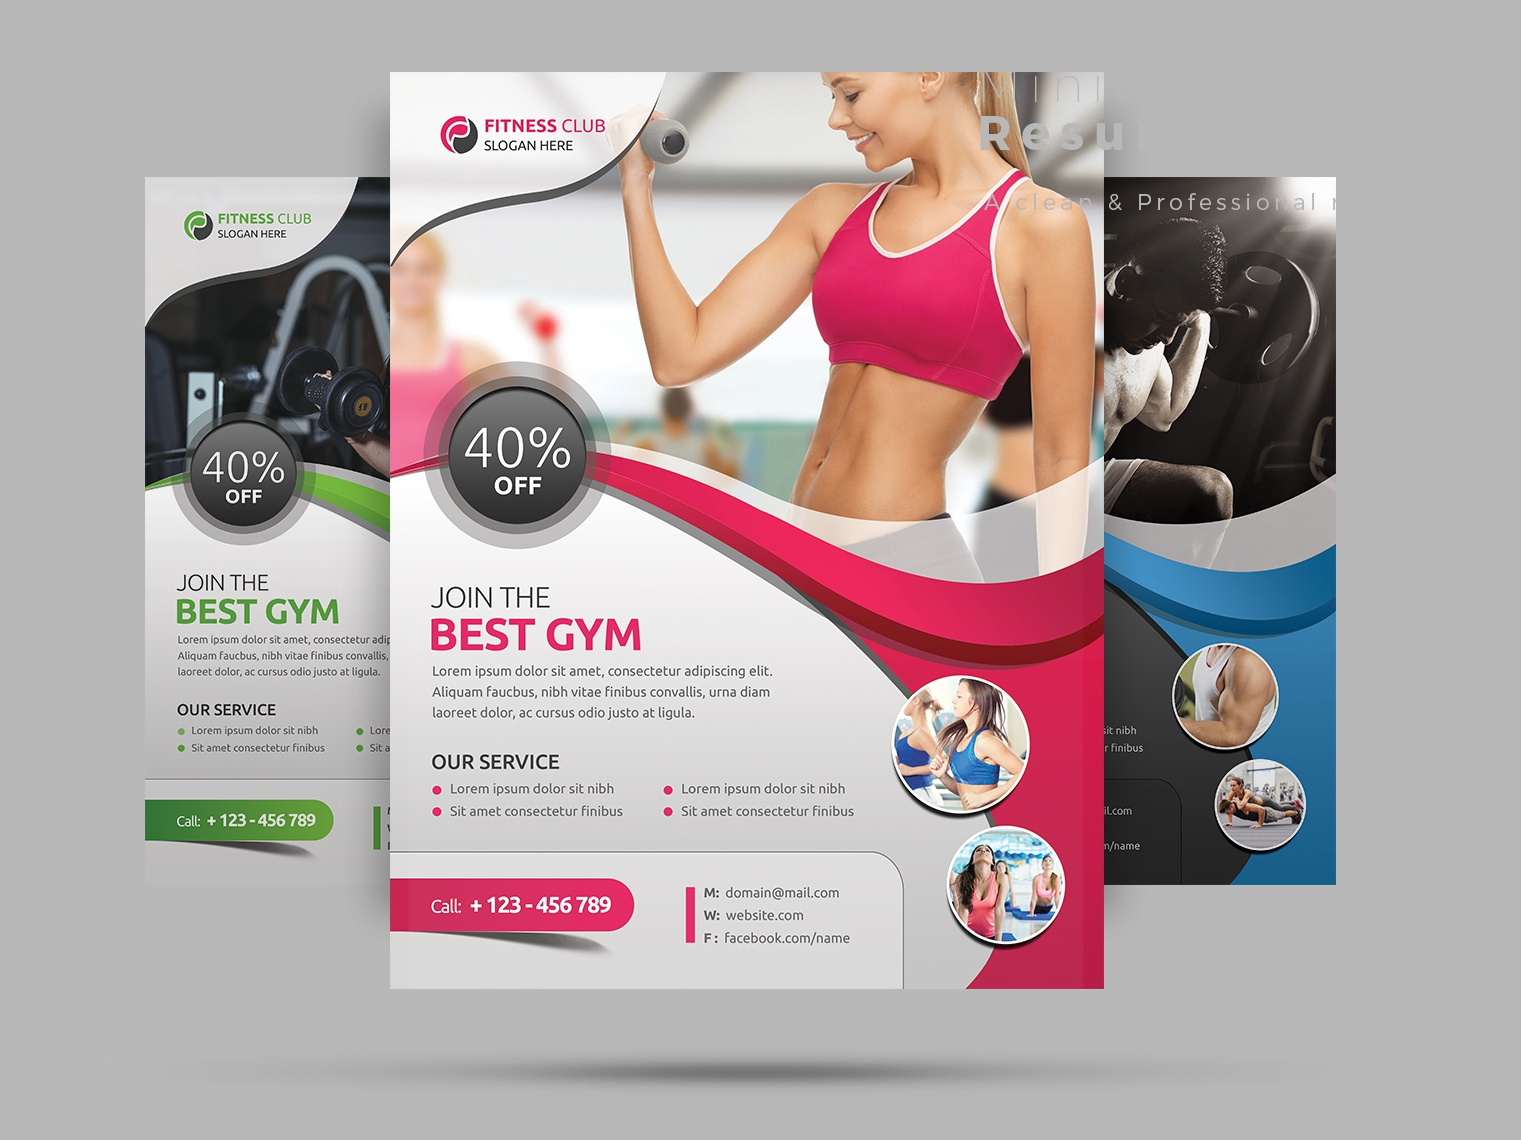 Fitness Flyer multipurpose modern health gymnasium gym generic fresh fitness flyer fitness exercise creative corporate commercial clean flyer clean business beauty aerobics a4 flyer a4